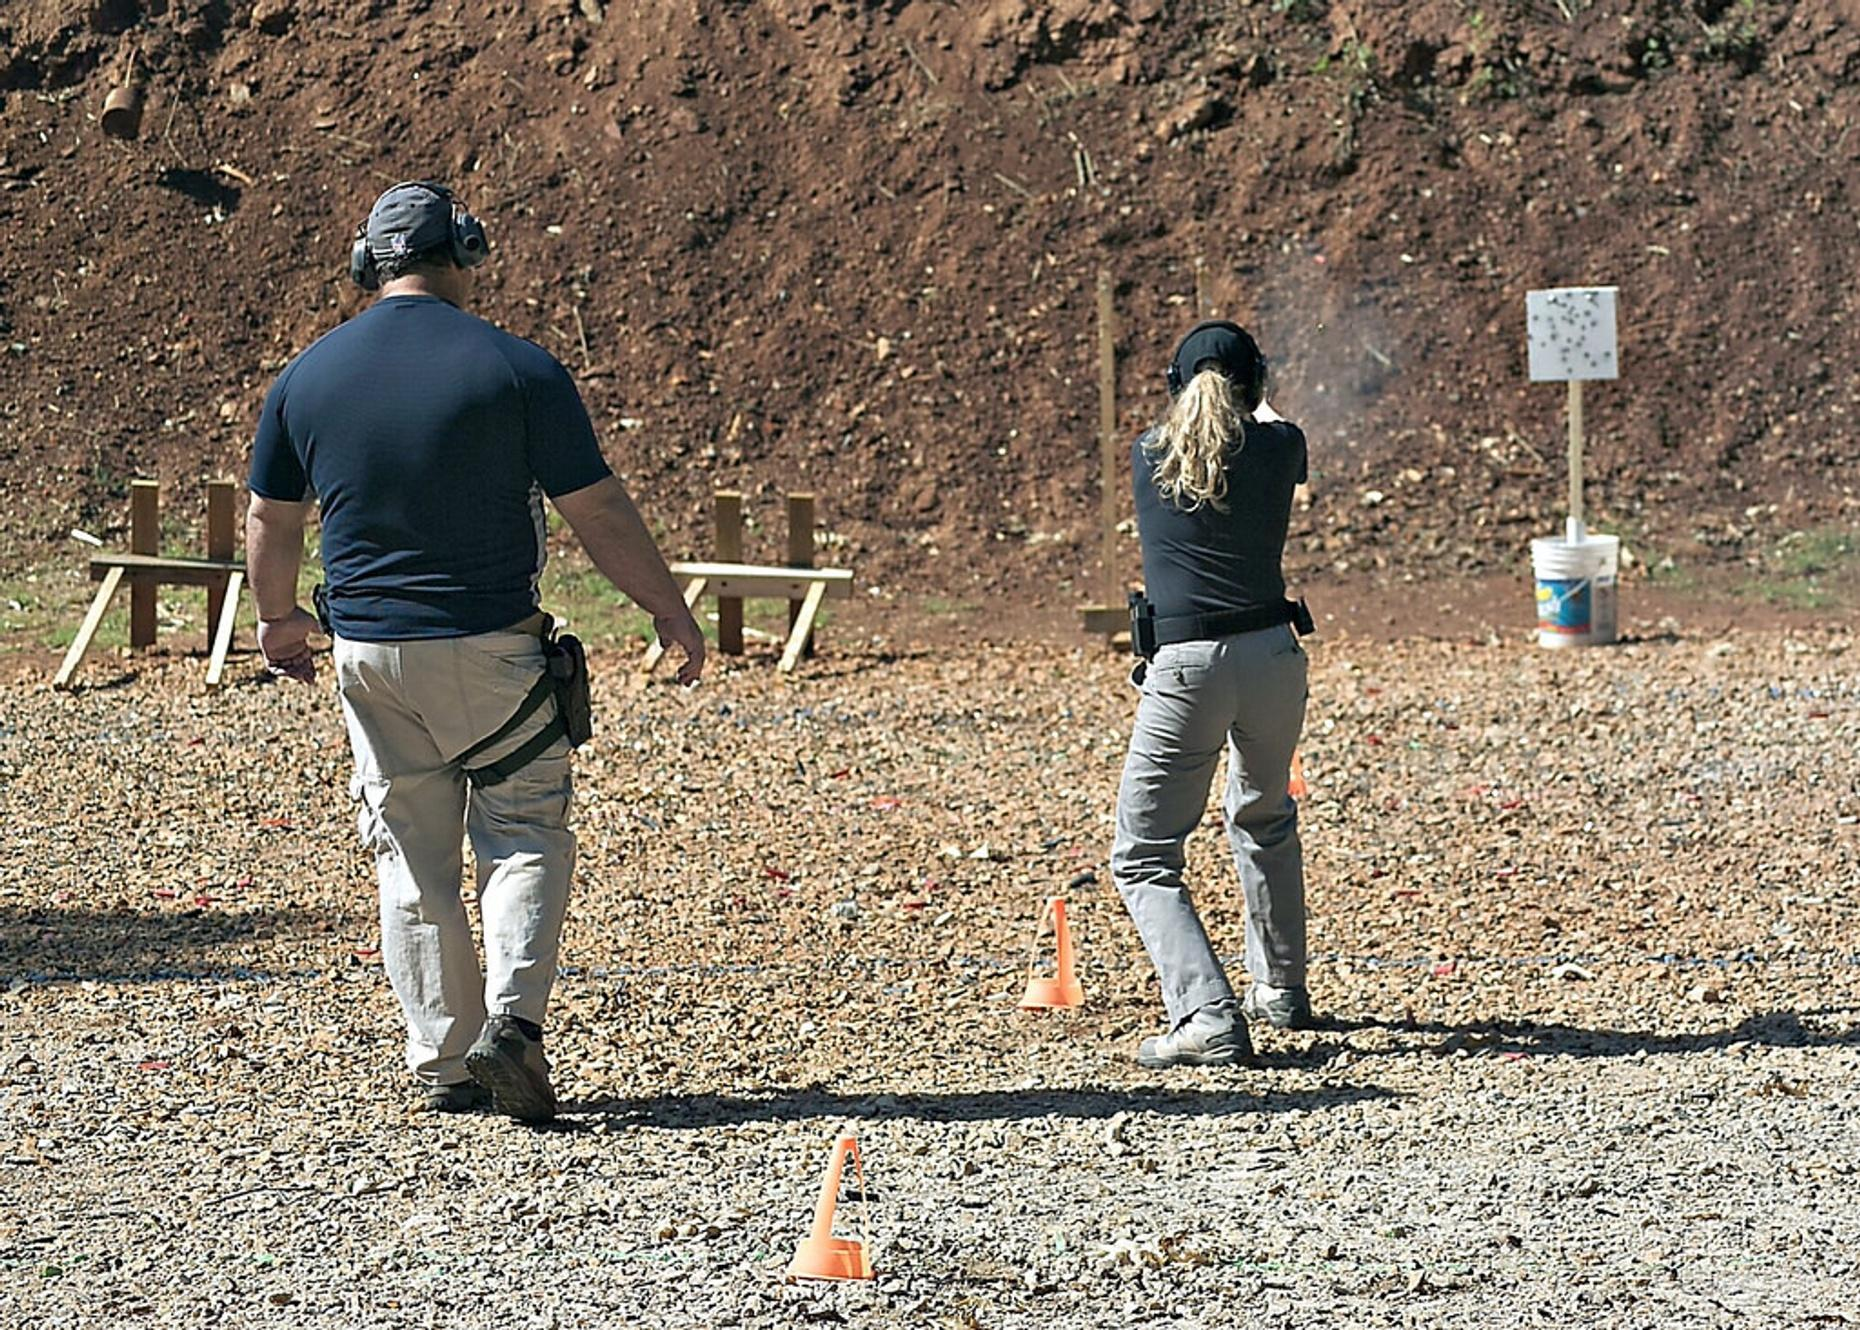 Concealed Carry Firearm Course in Stroudsburg